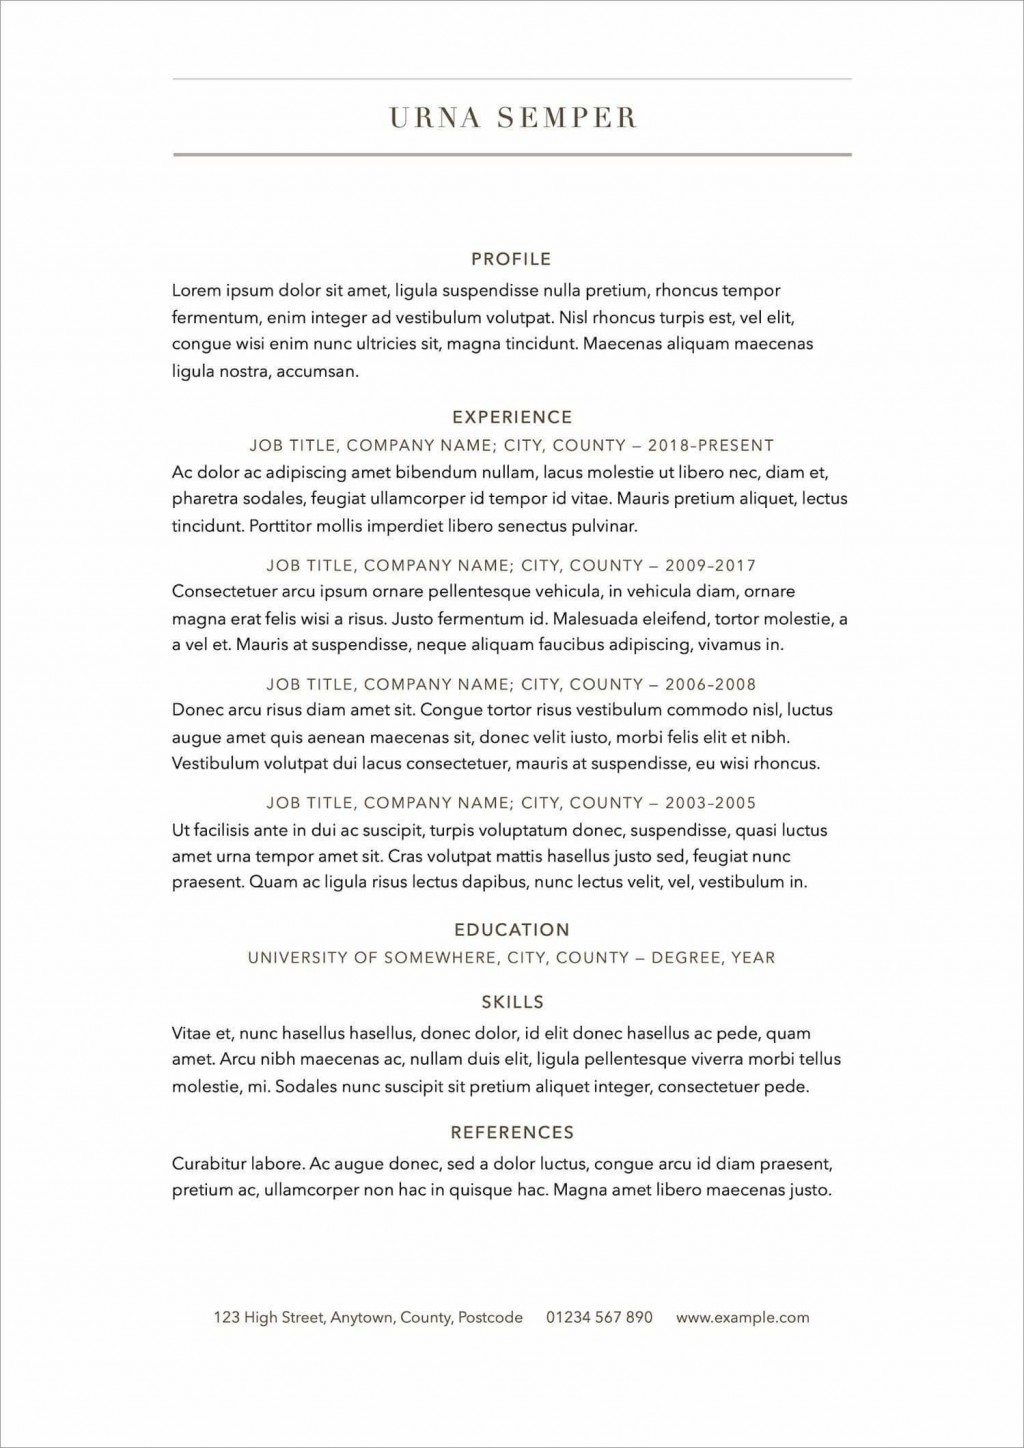 006 Surprising Free Printable Resume Template 2018 High Definition Large